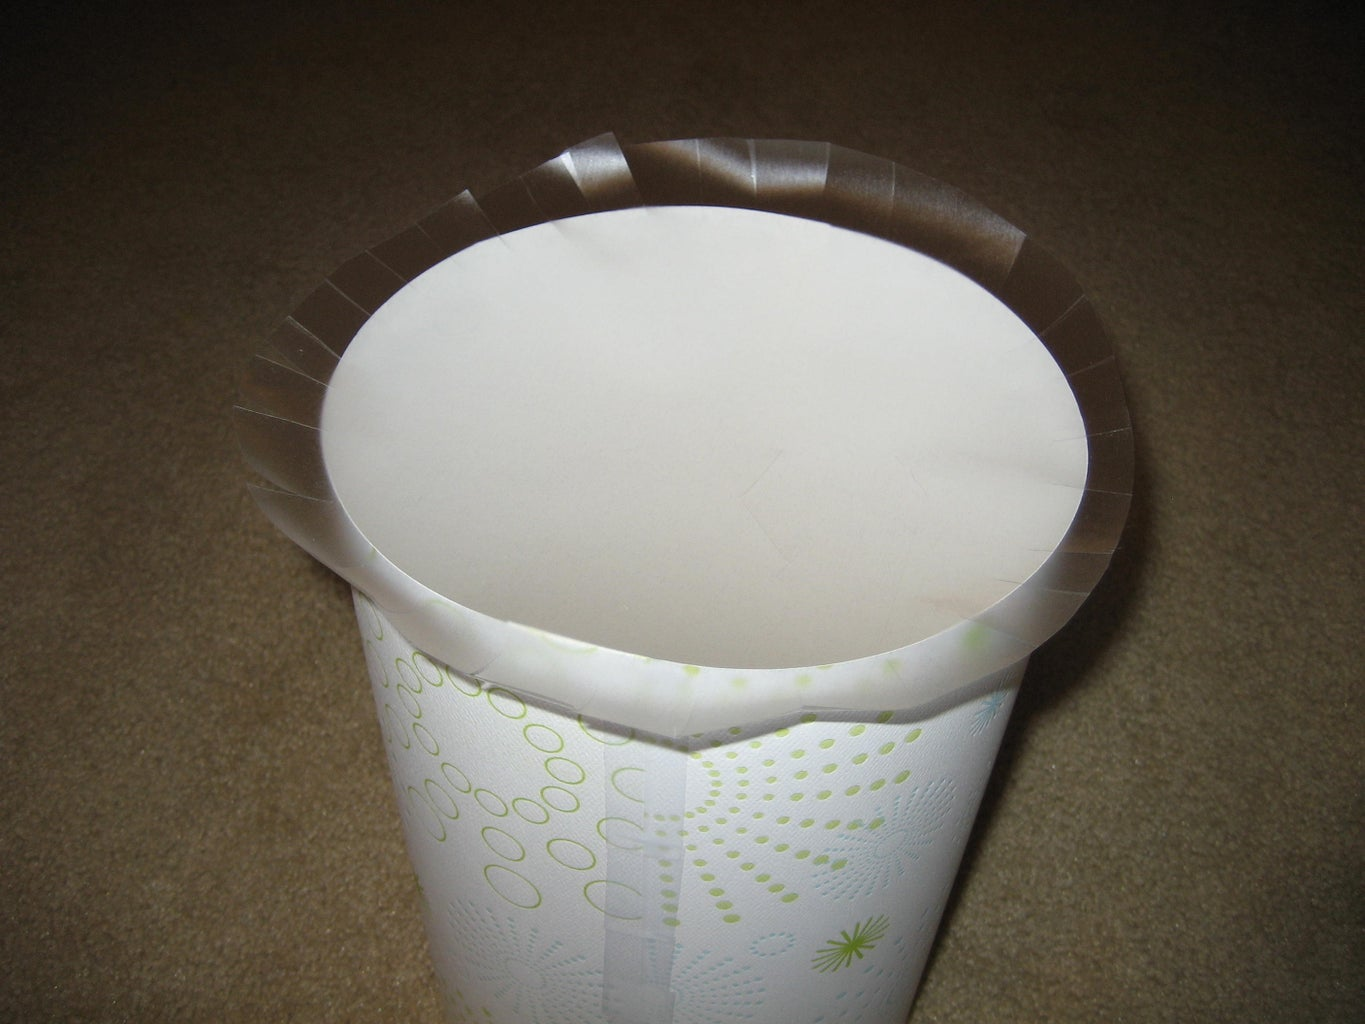 Place the Circle of Contact Paper on Top of the Cylinder, and Gently Fold Down the Pieces of Contact Paper All the Way Around.